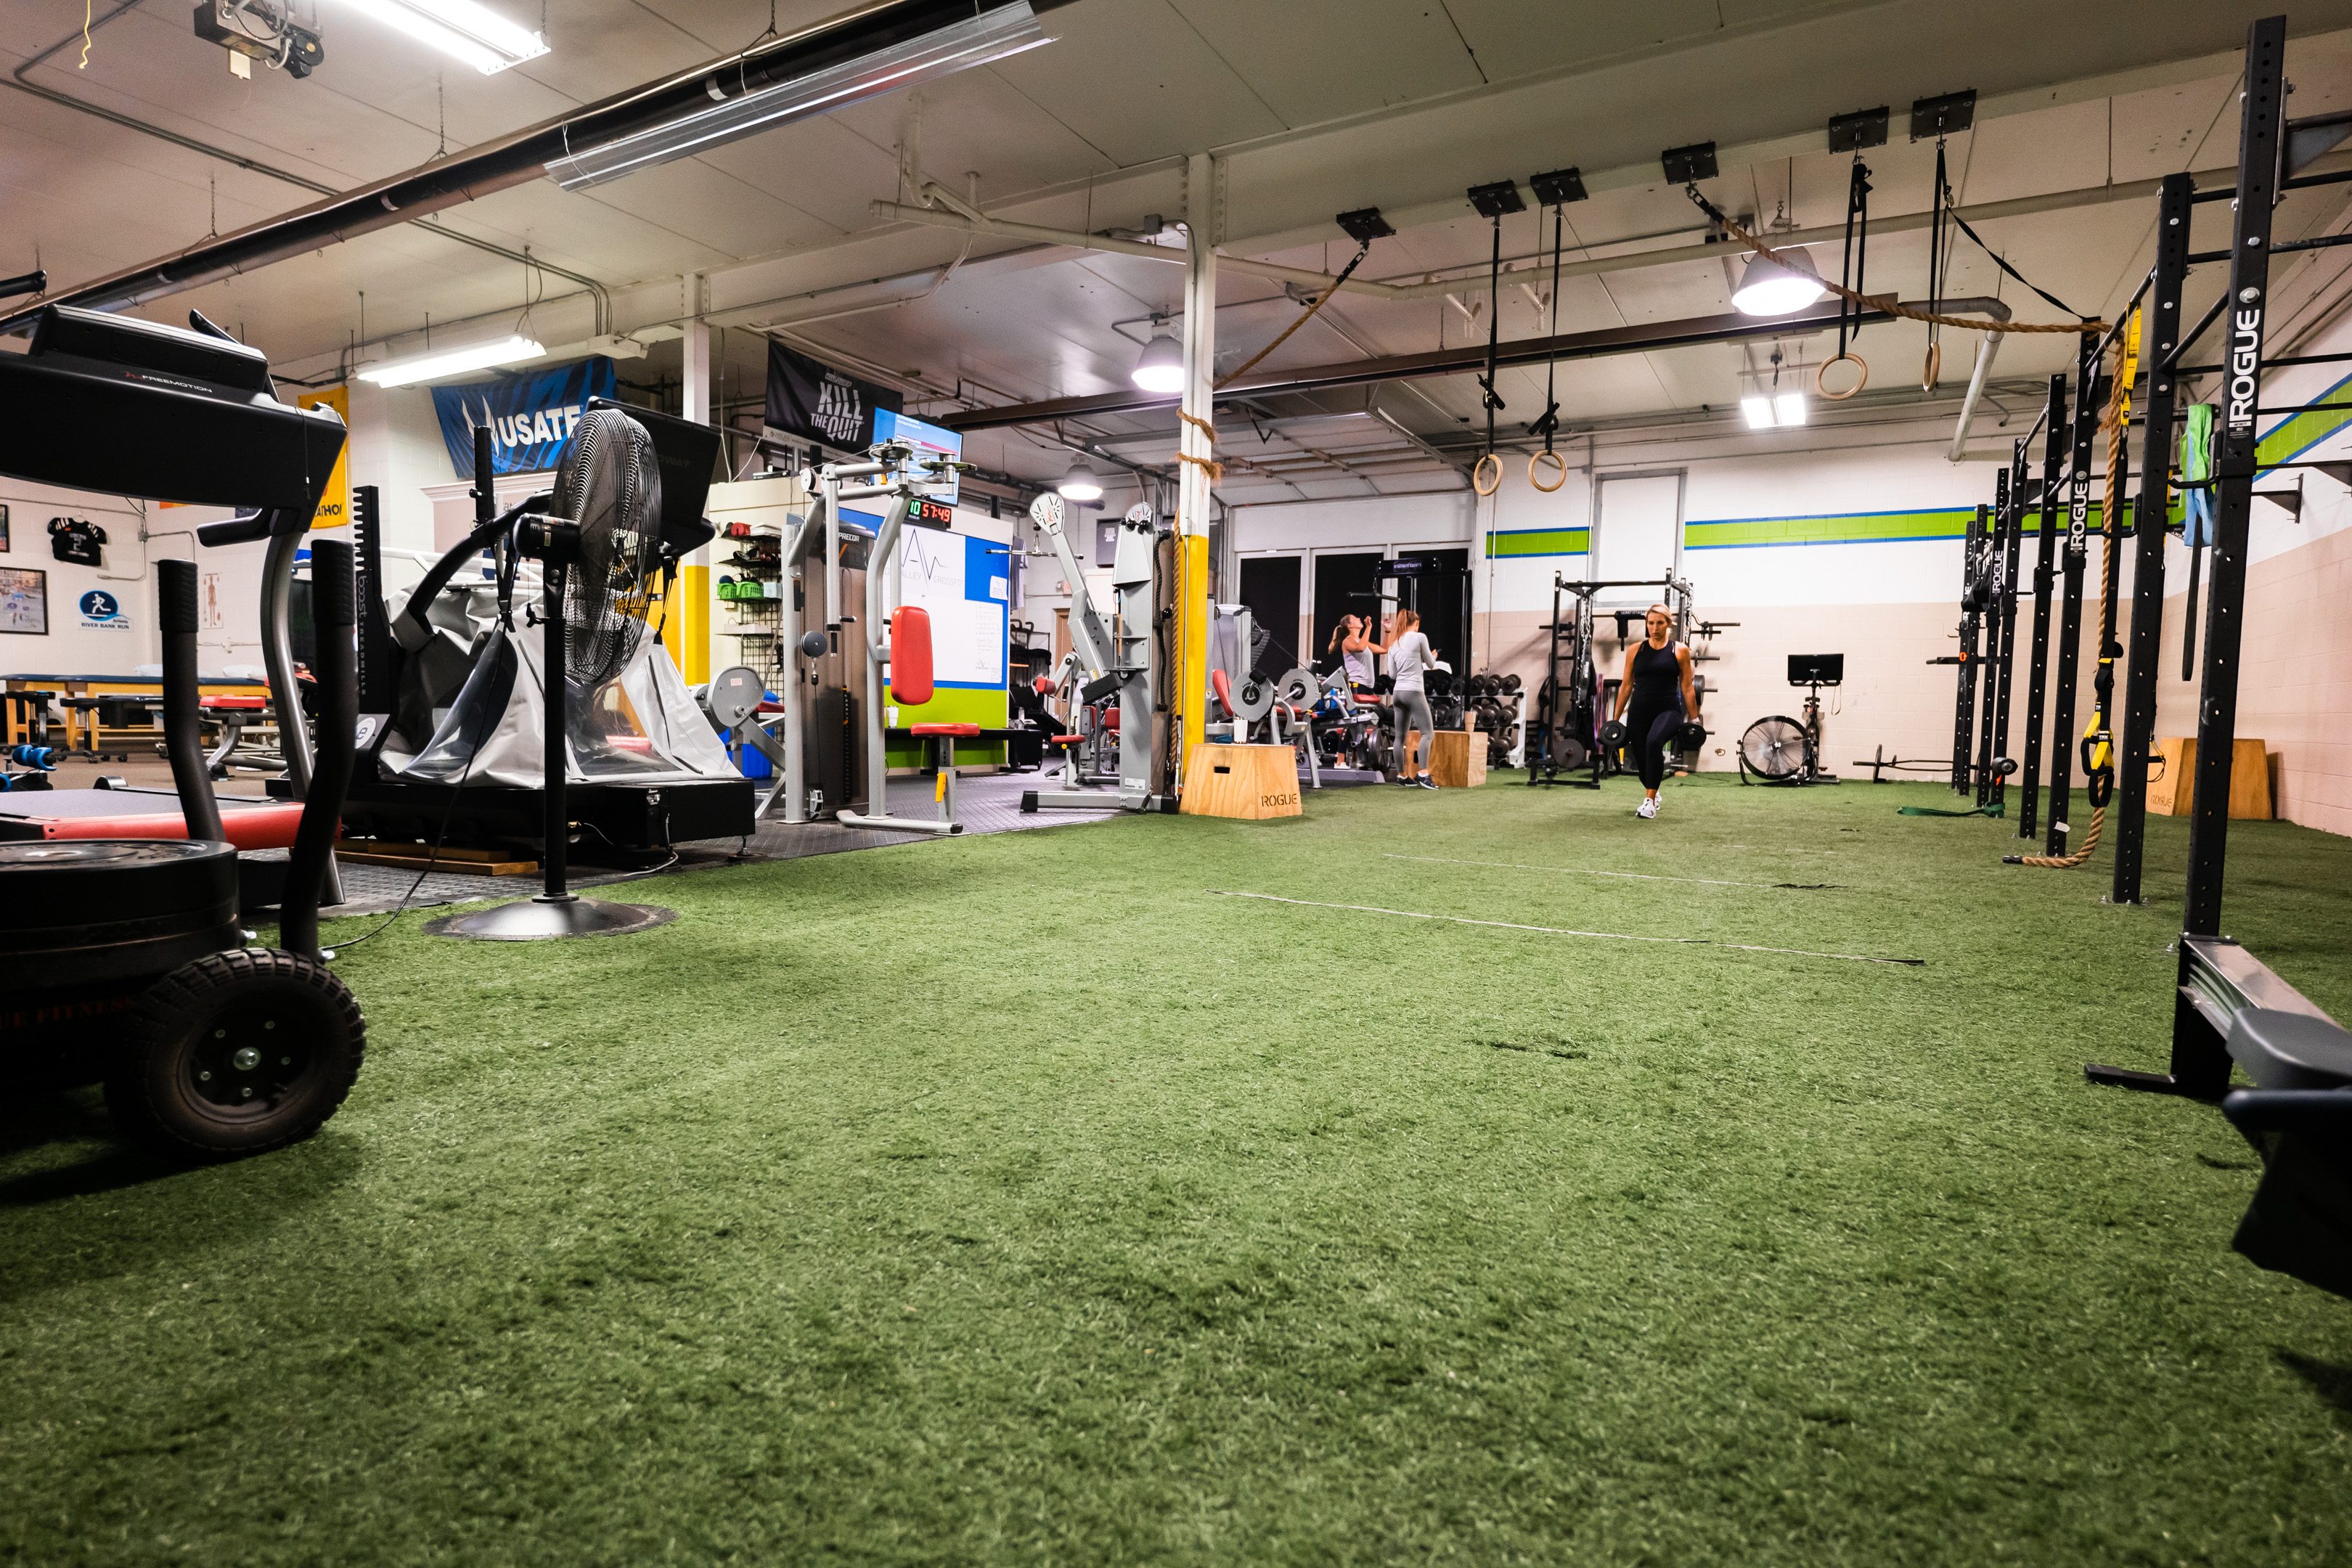 Gym space at Prevail Grand Rapids personal training and gym located in Ada, Michigan.